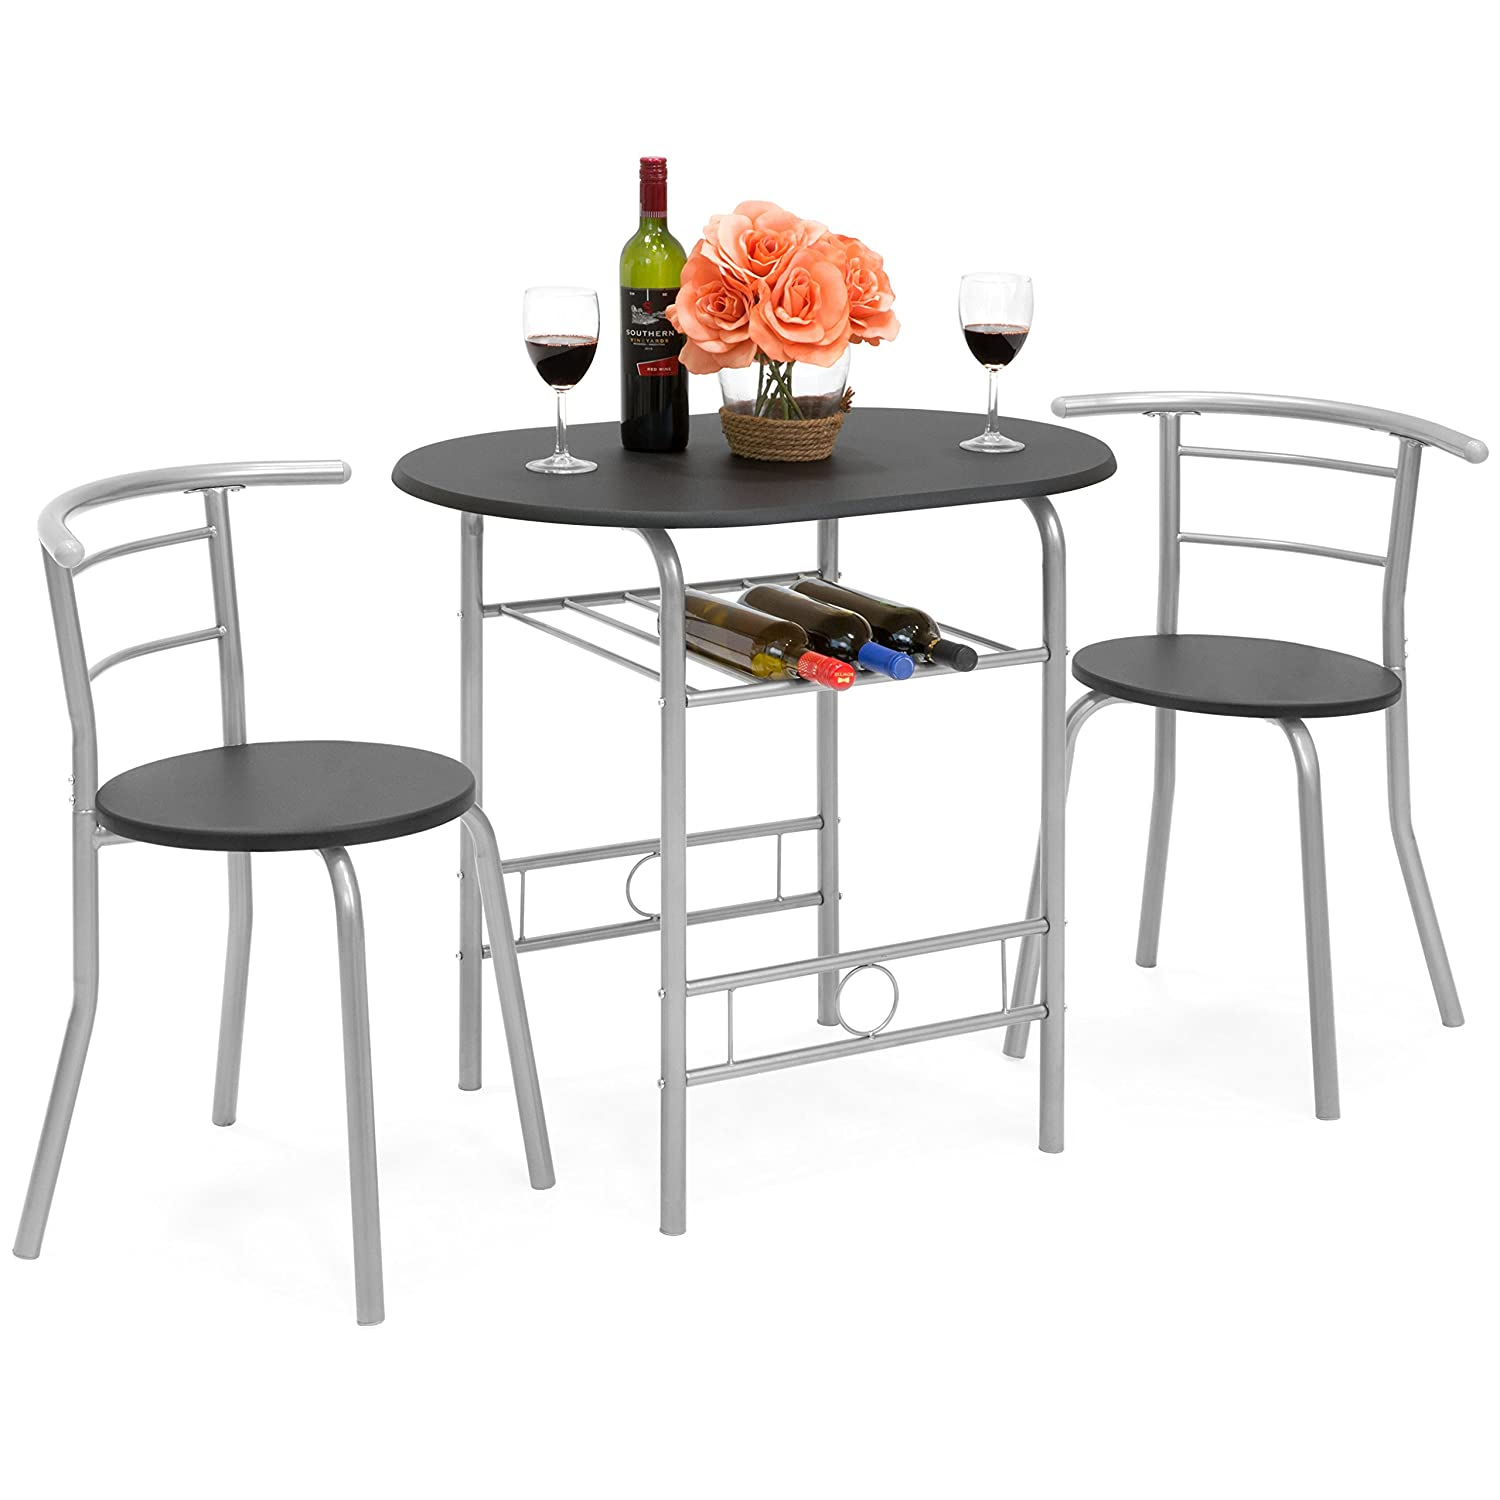 Best Choice Products 3-Piece Wooden Kitchen Dining Room Round Table and Chairs Set w/Built in Wine Rack (Black)